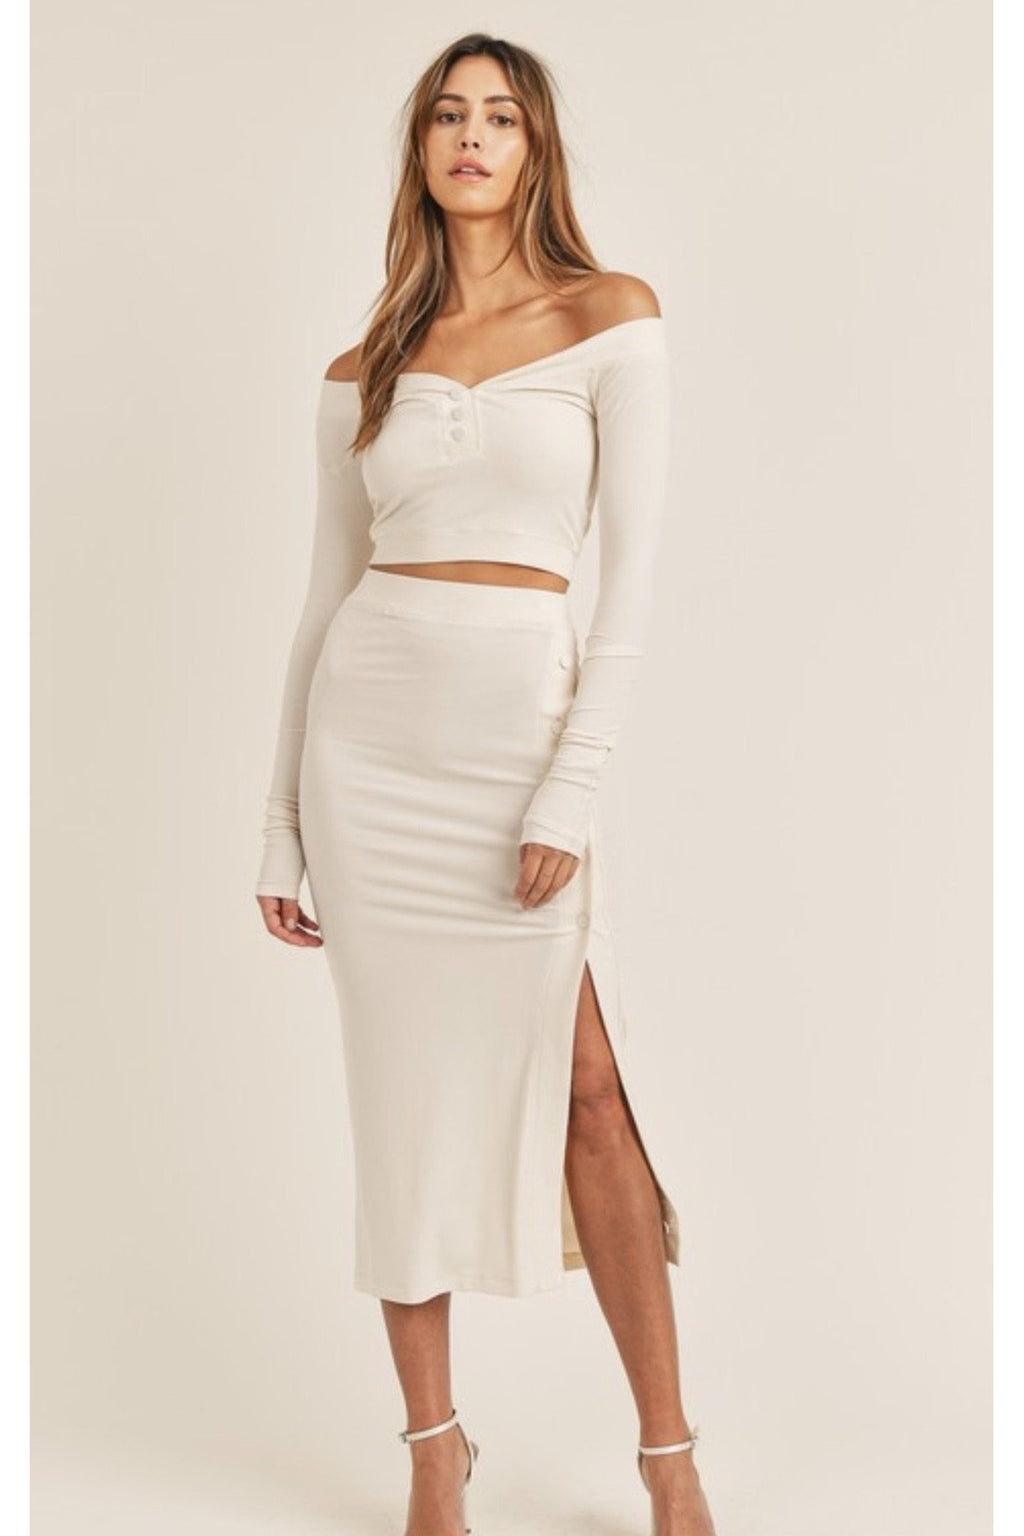 Fiona Two Piece Set in Cream $68